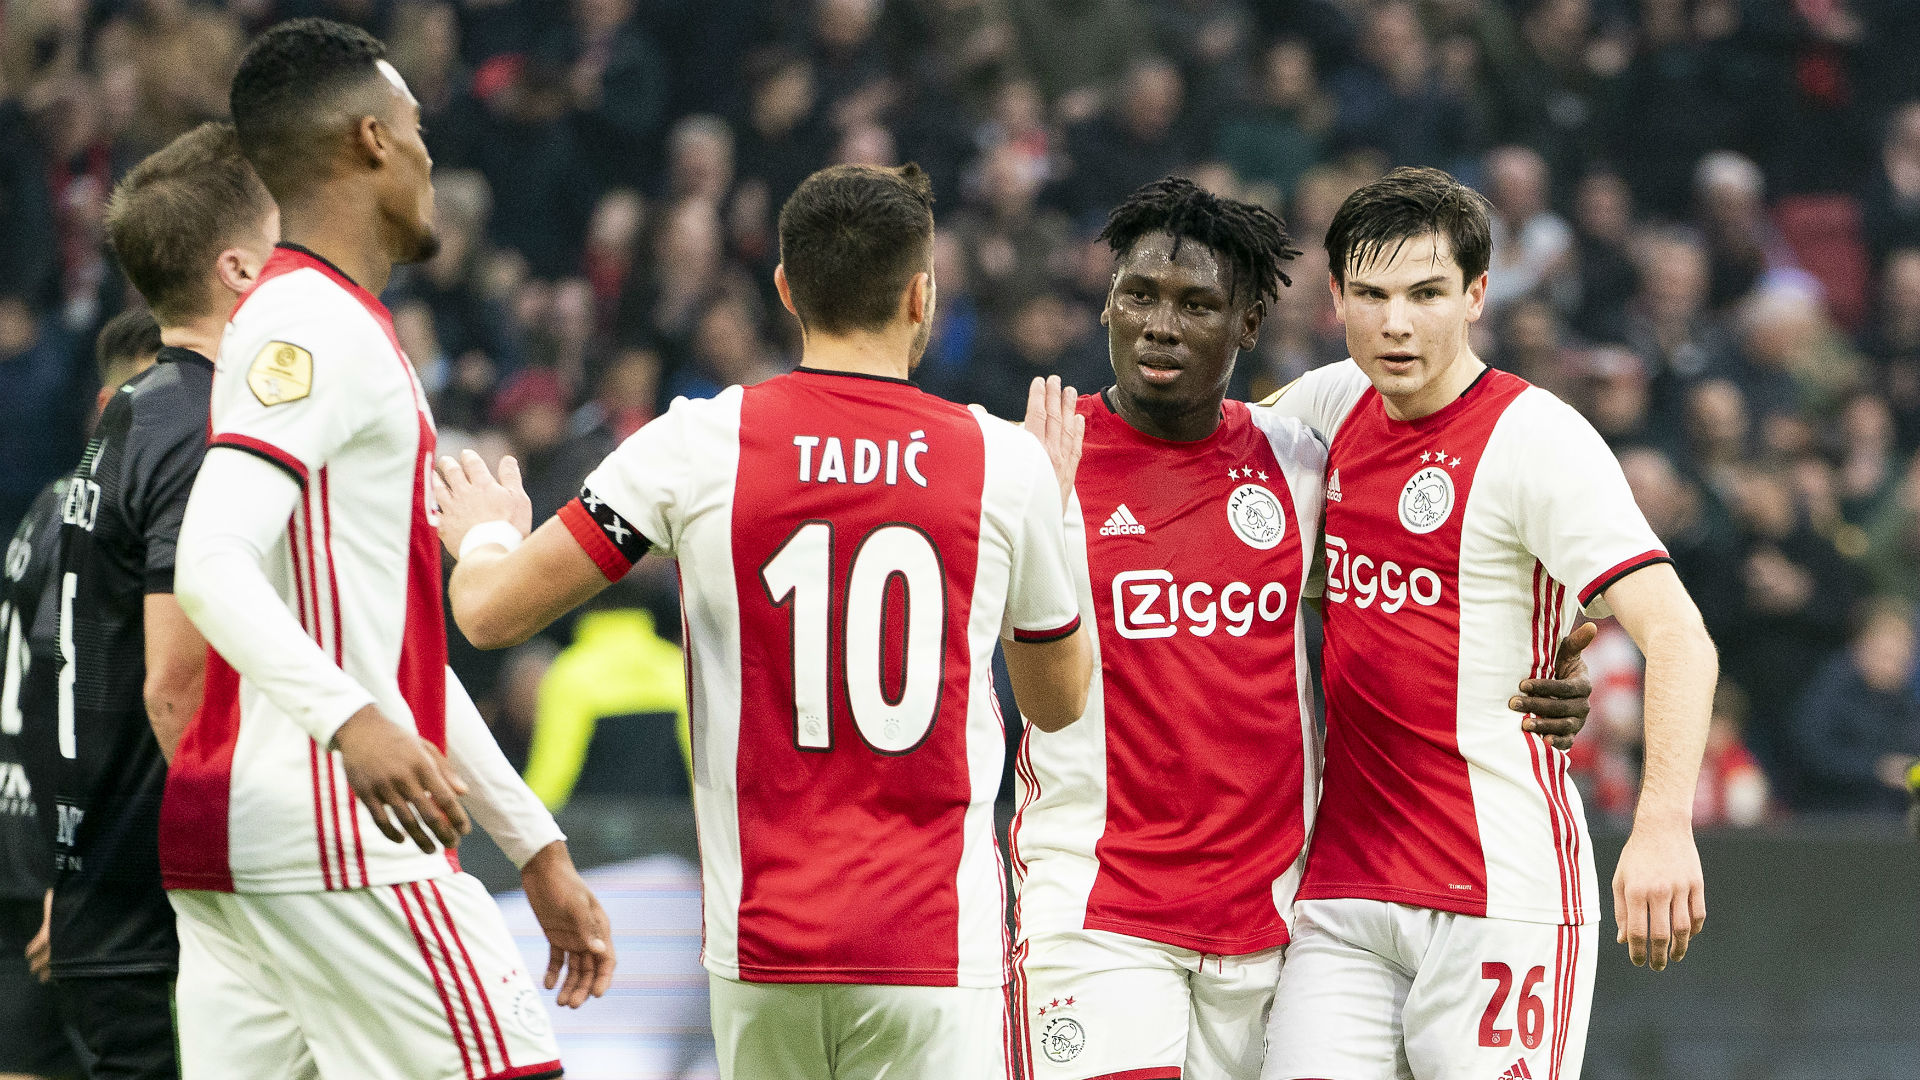 Andre Onana and Lassina Traore help Ajax go top of Eredivisie after victory over Heracles